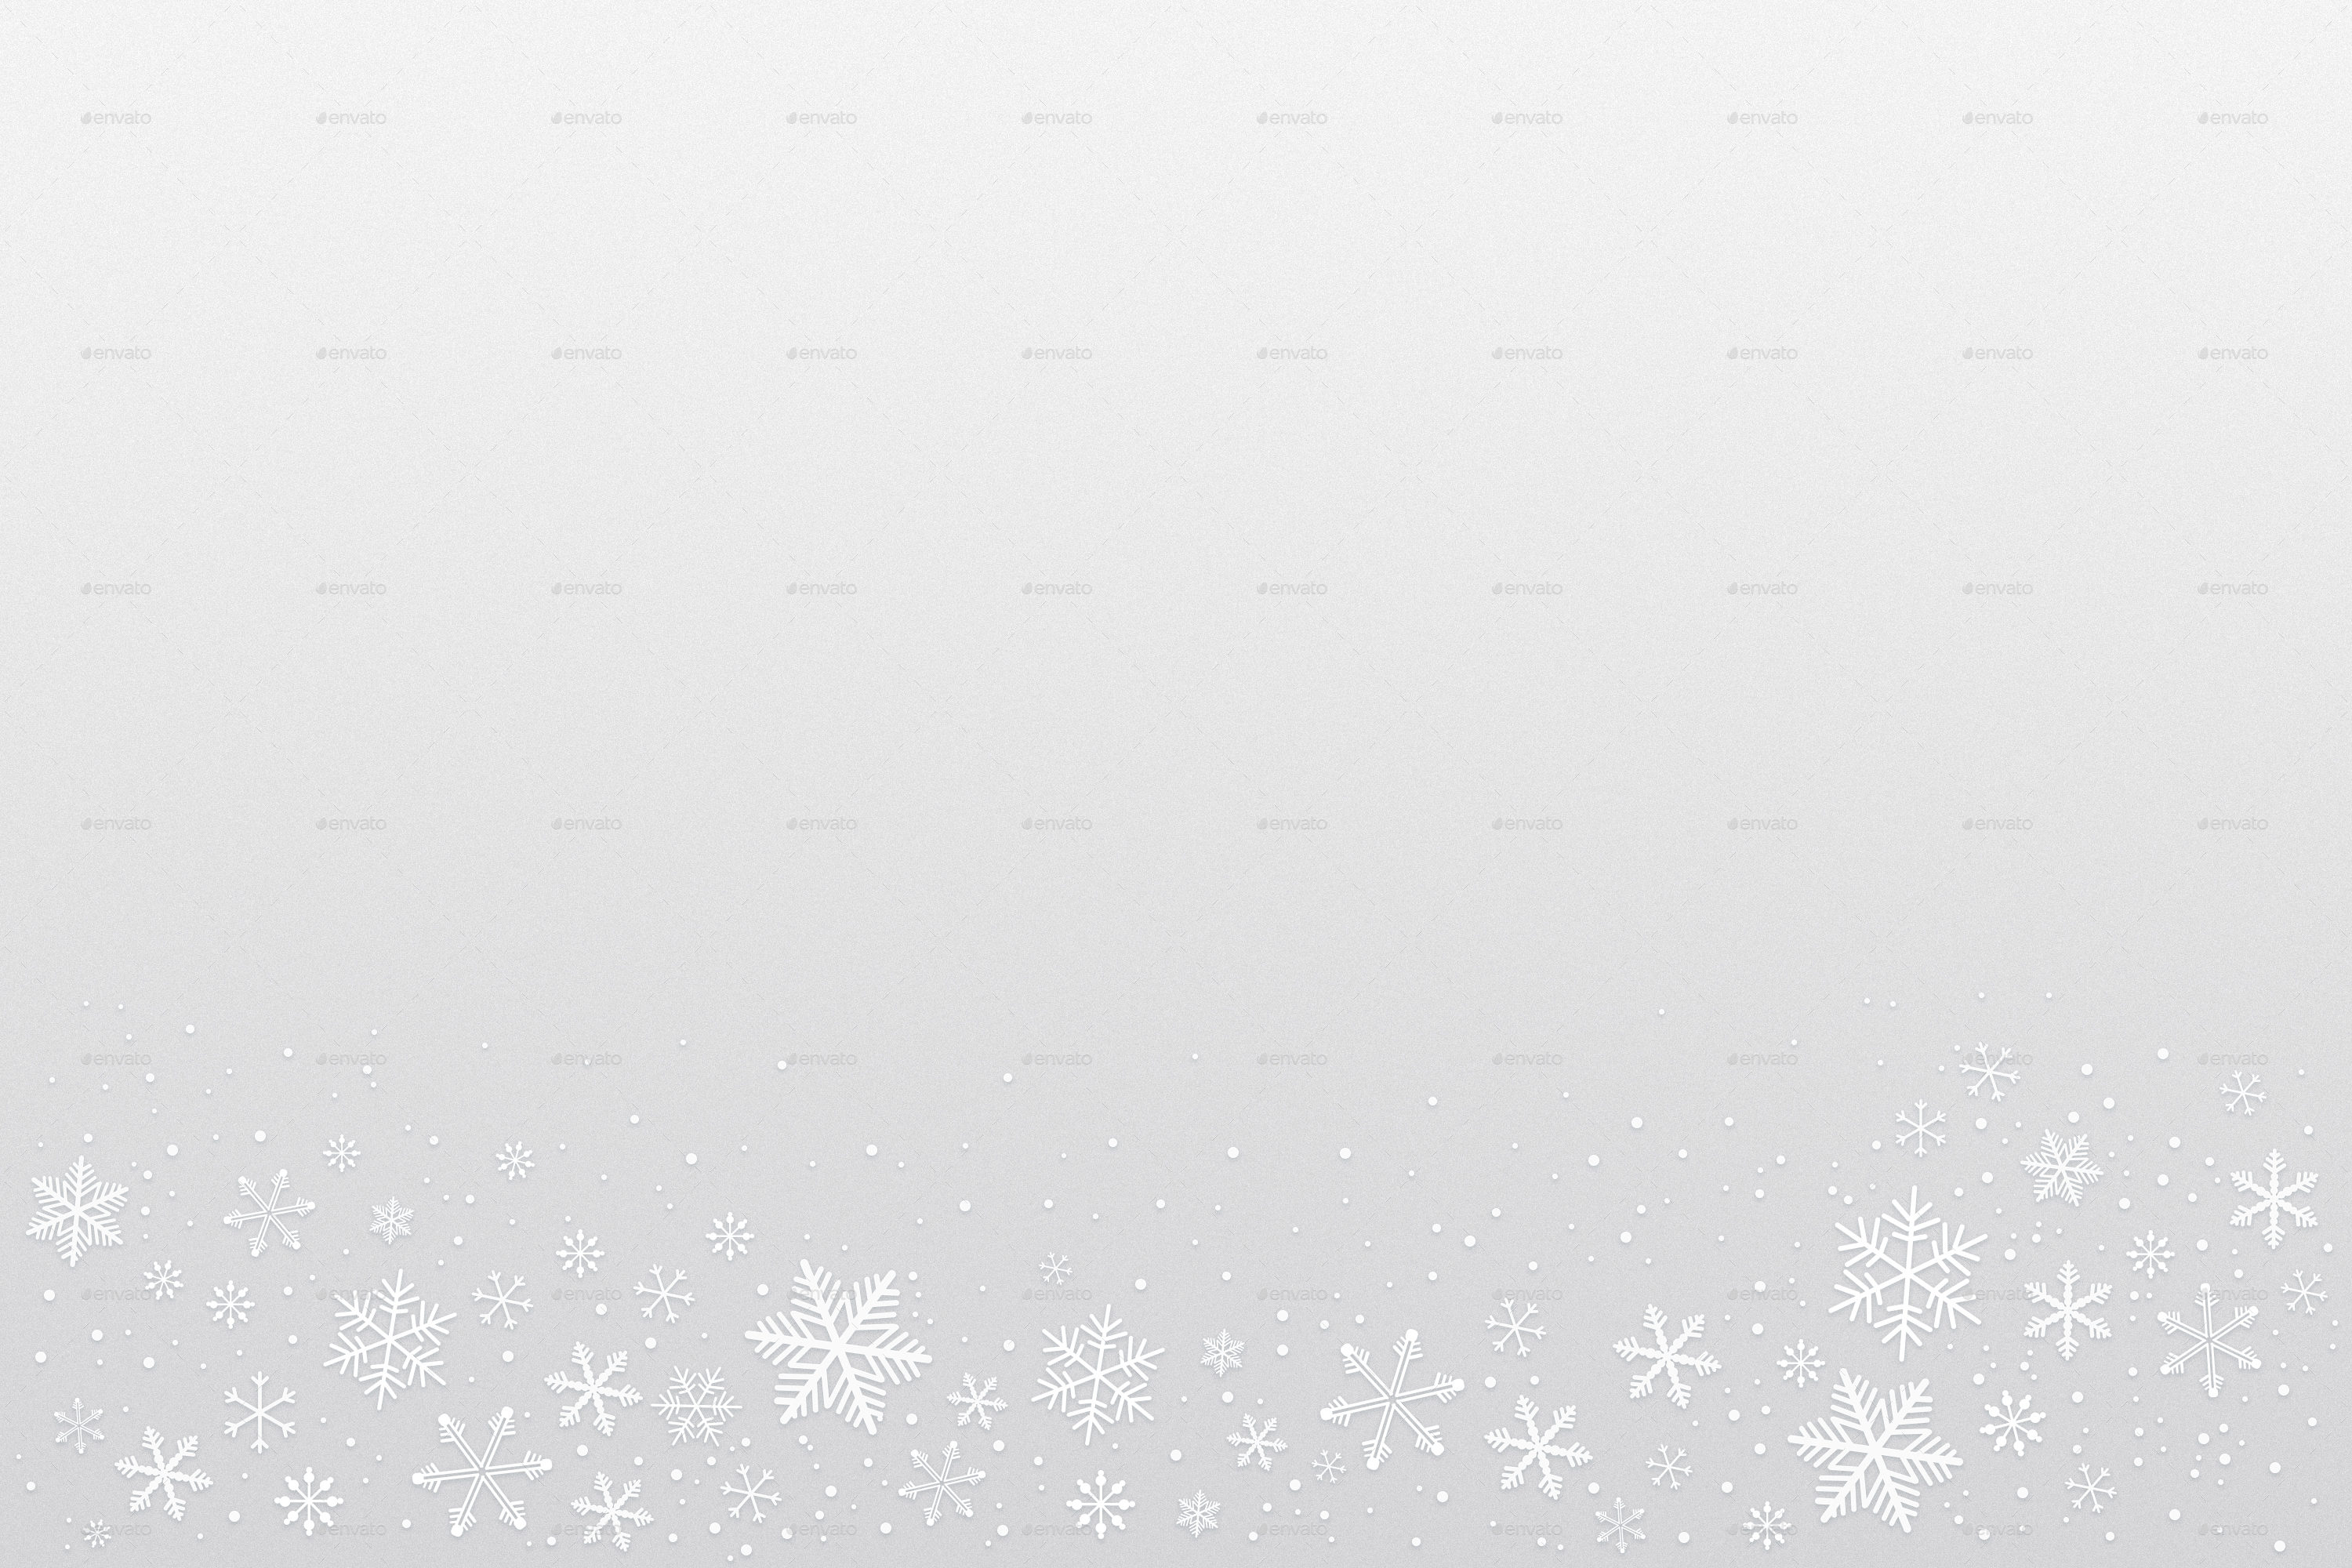 winter powerpoint template images - templates example free download, Powerpoint templates